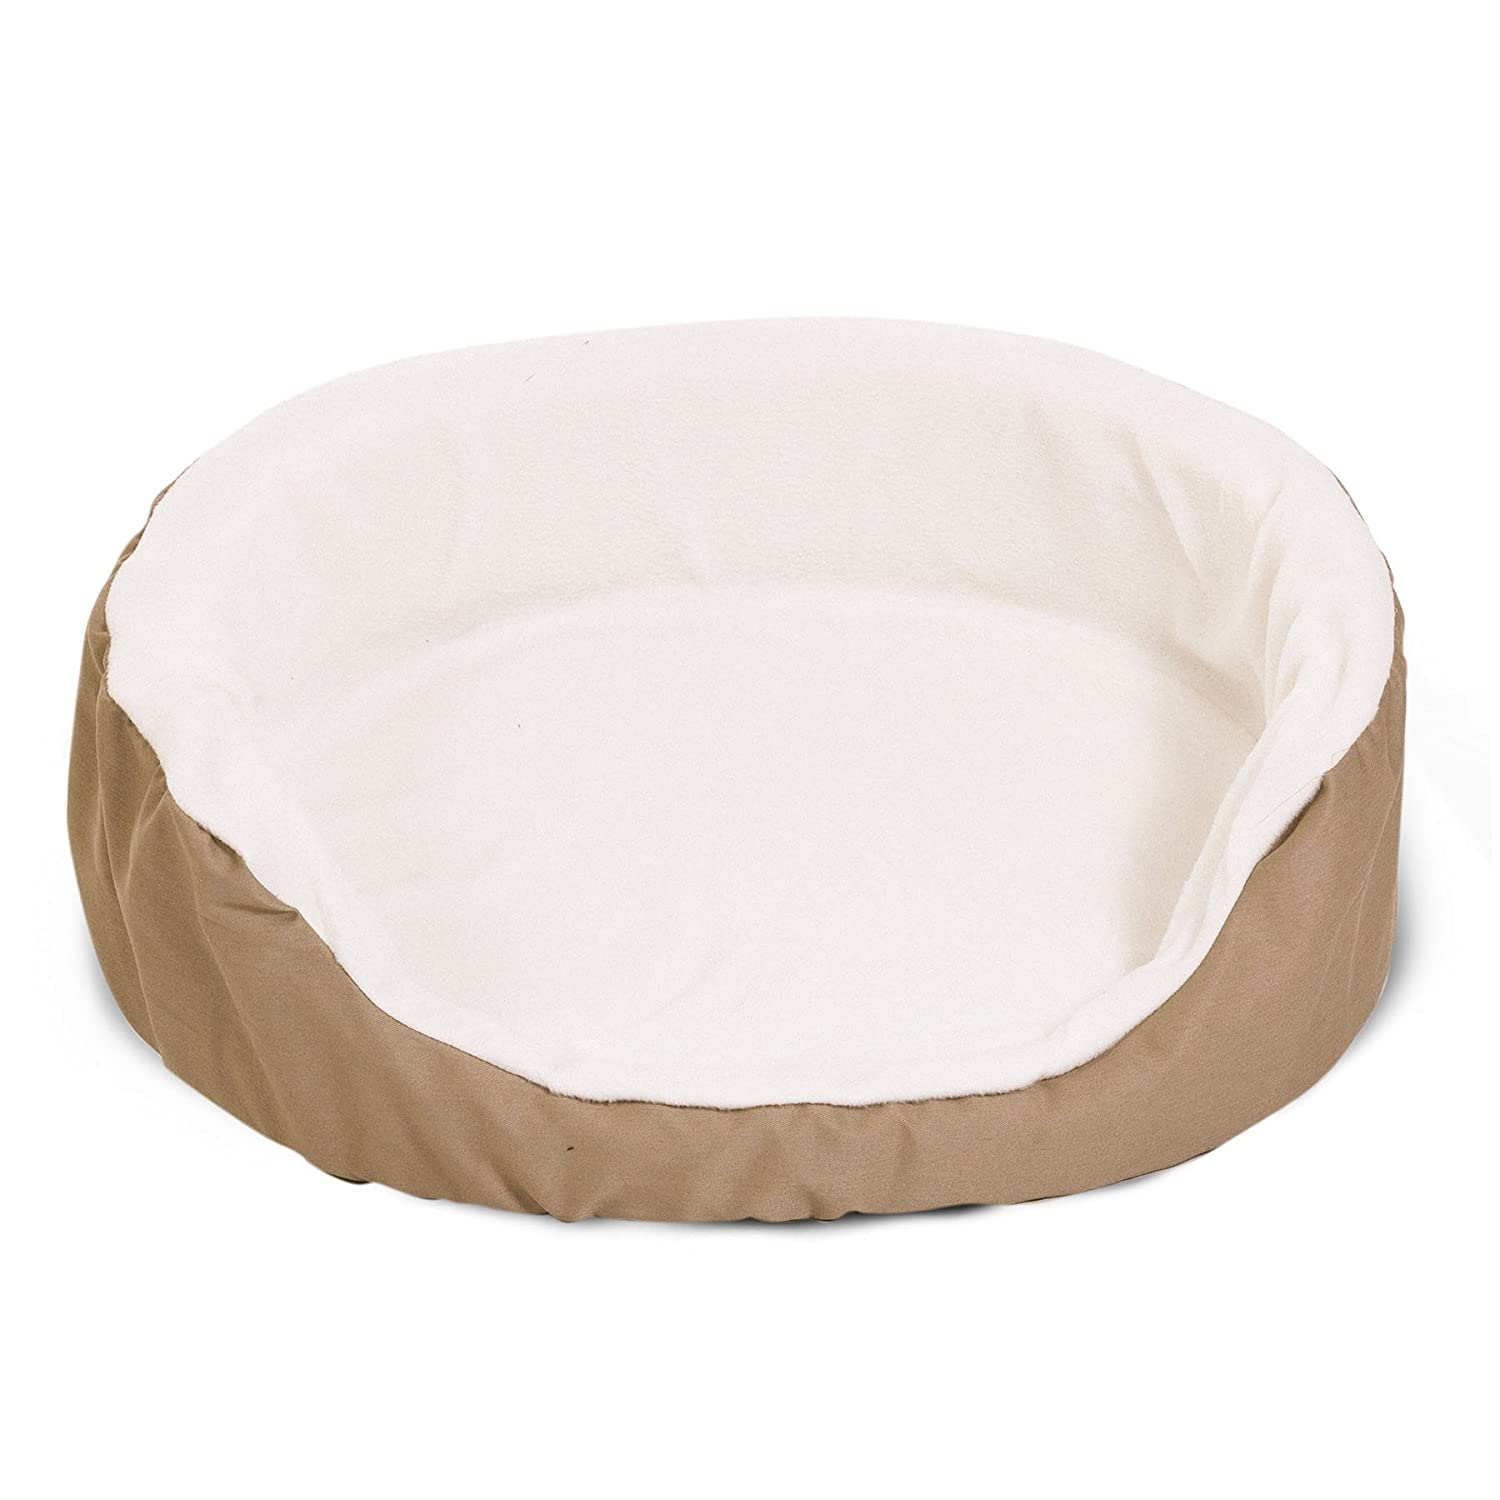 Khaki S Khaki S Majestic Pet 23x18 Khaki Lounger Pet Dog Bed Products Small